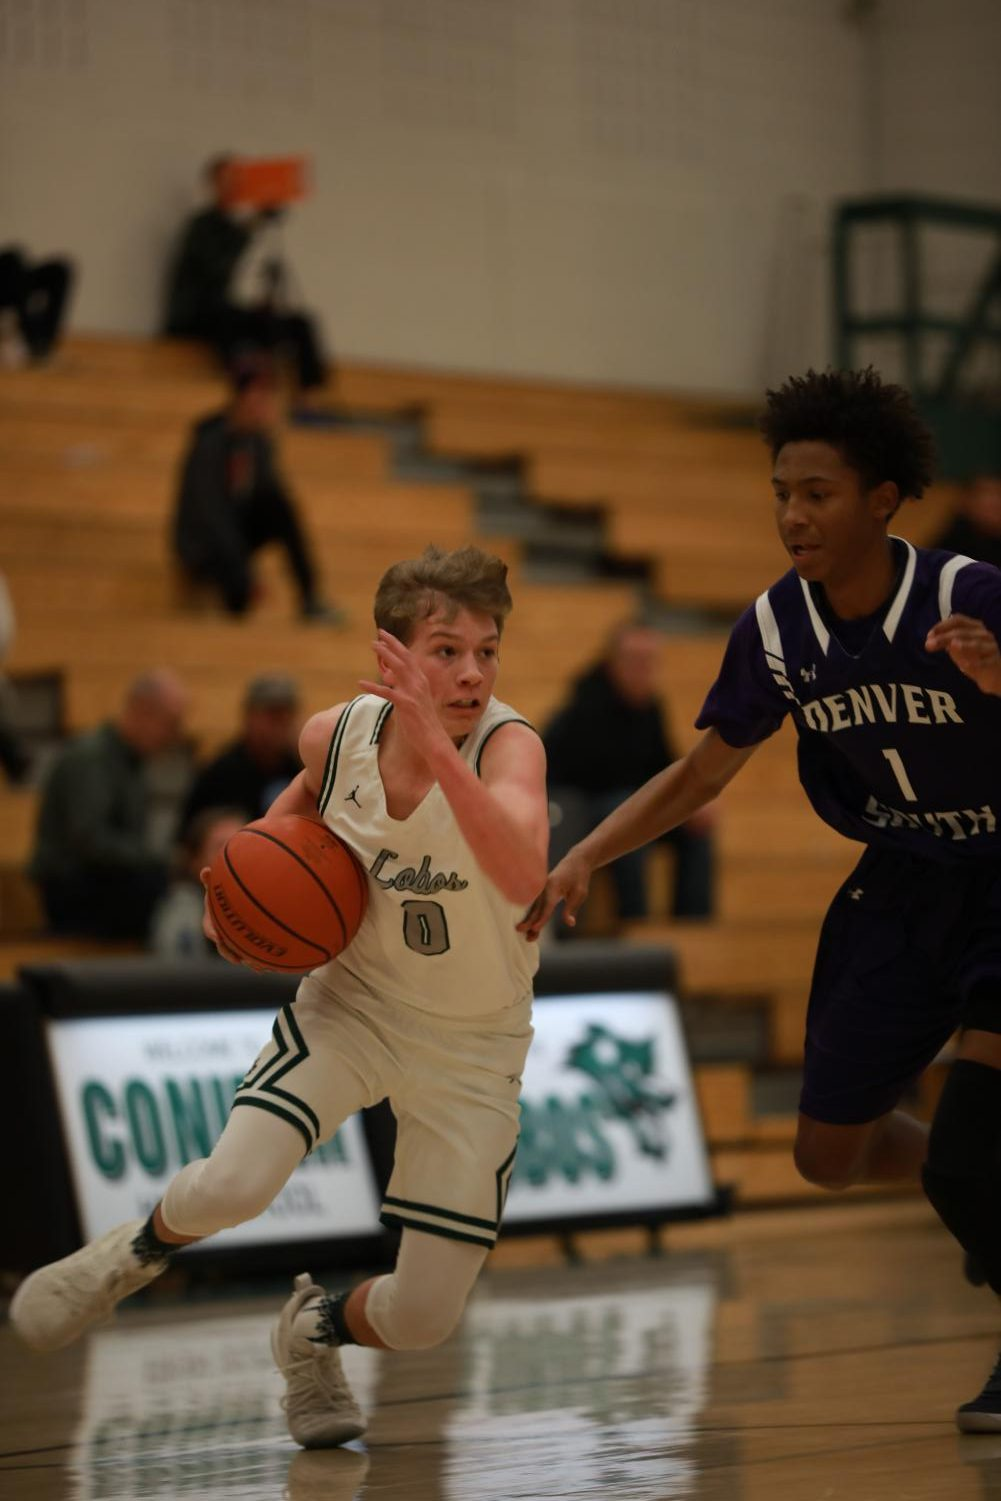 Landon Wallace drives down the court late in the game against Denver South.